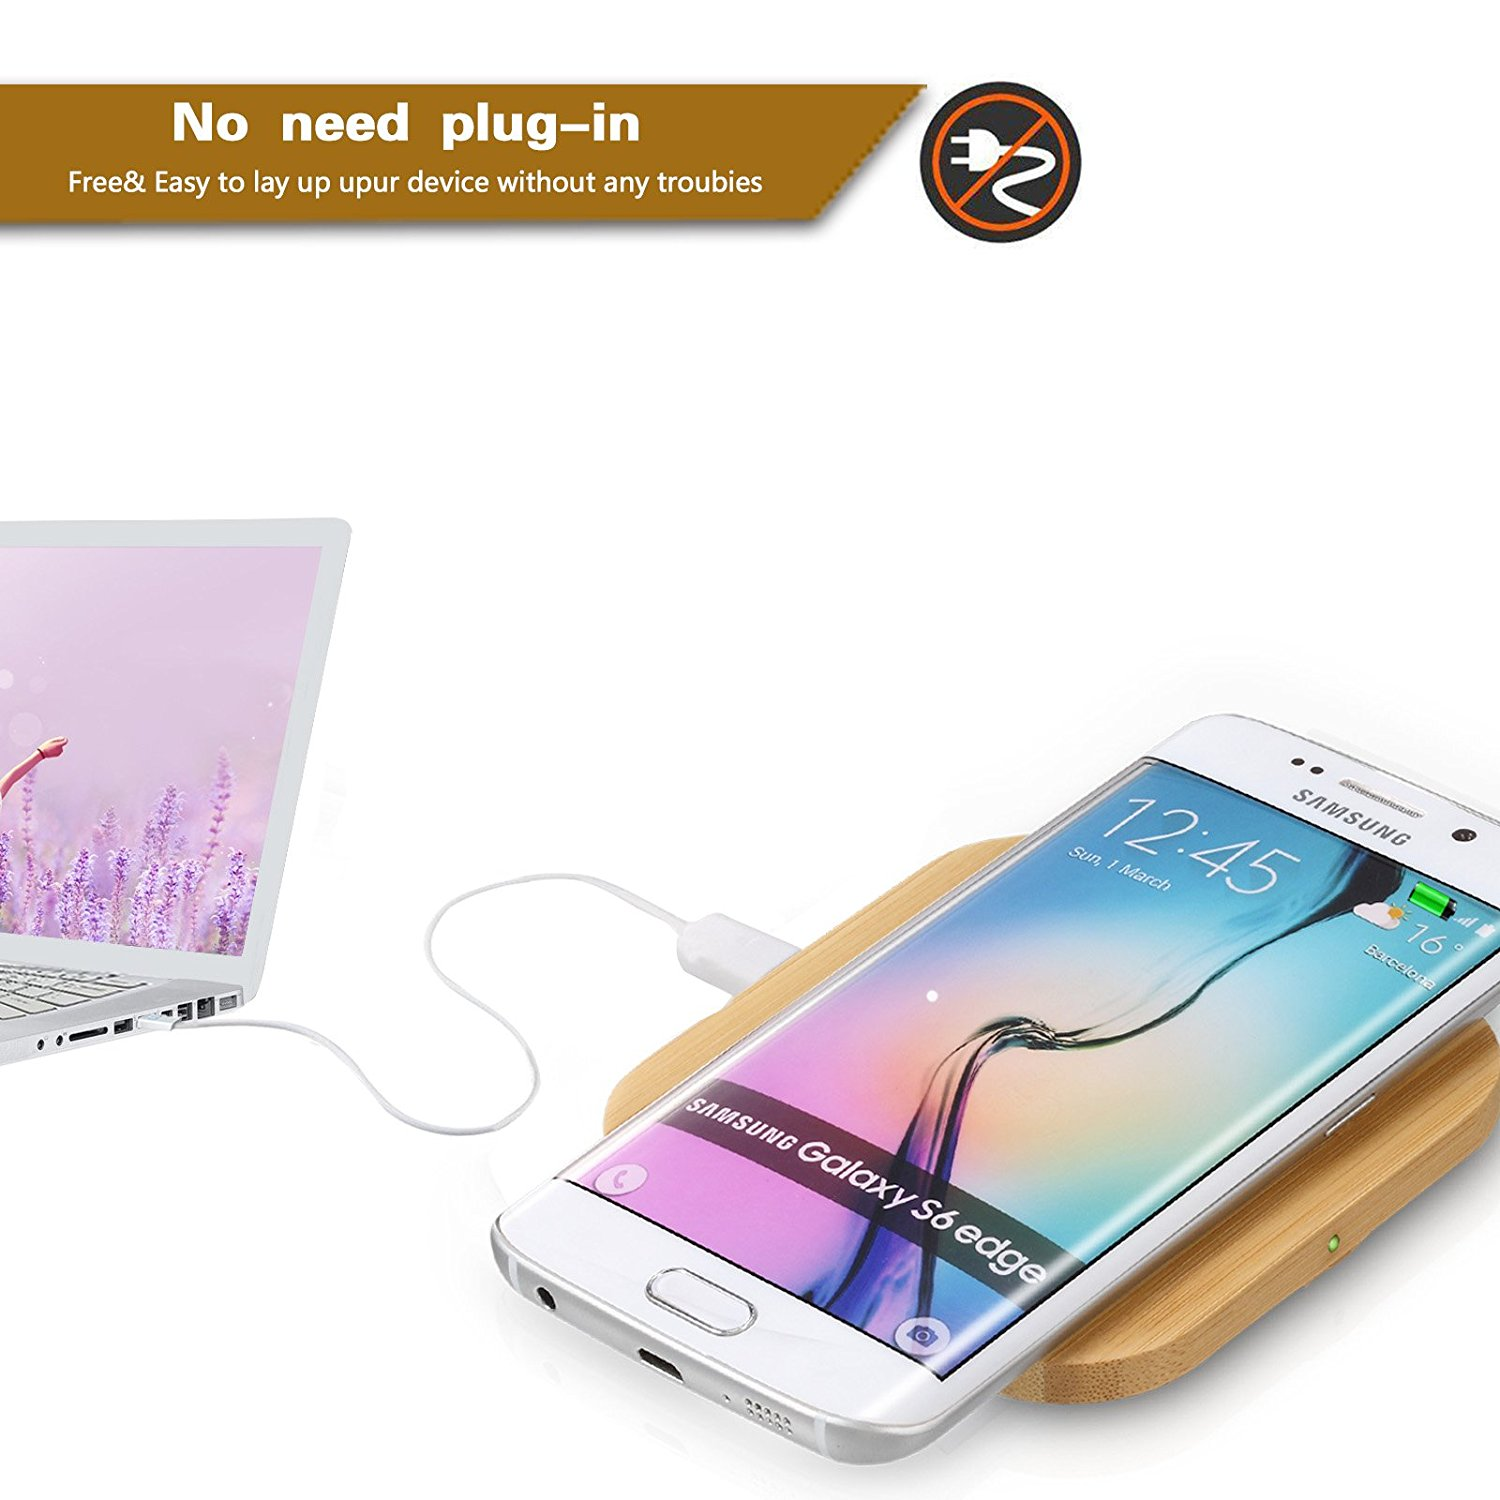 PPLEE Bamboo Wirelss Phone Charging Pad Compatible with Samsung S6,Note 5,S6 Edge +,Nexus 4/5/6/7,Nokia Lumia 920,LG Optimus Vu2,All Qi Stardard Devices (square) image 5